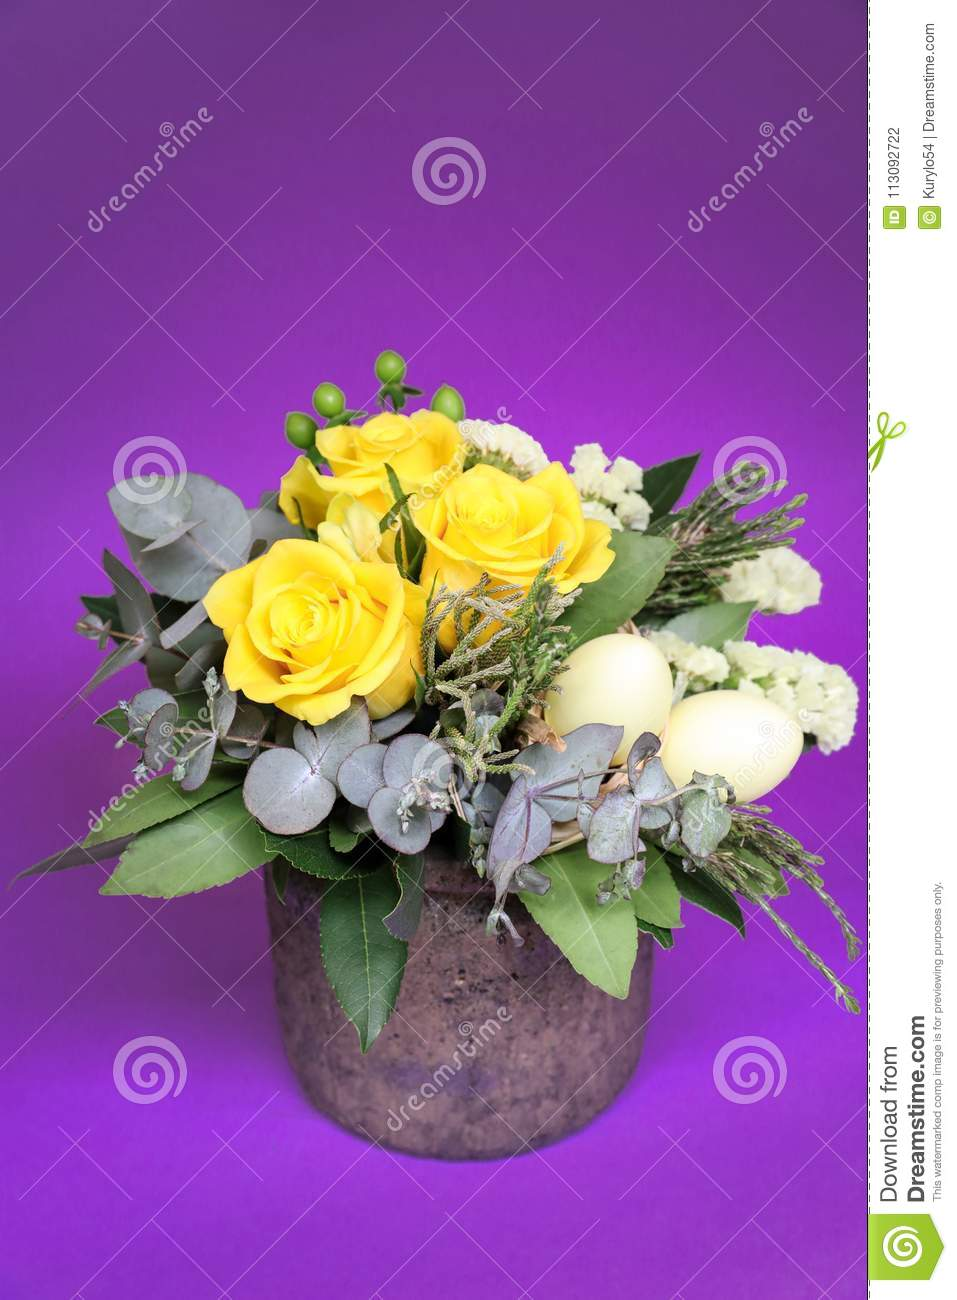 Festive Flower Arrangement Of Yellow Roses And Other Plants With Easter Eggs Decorated On Violet Background Stock Photo Image Of Floral Holiday 113092722